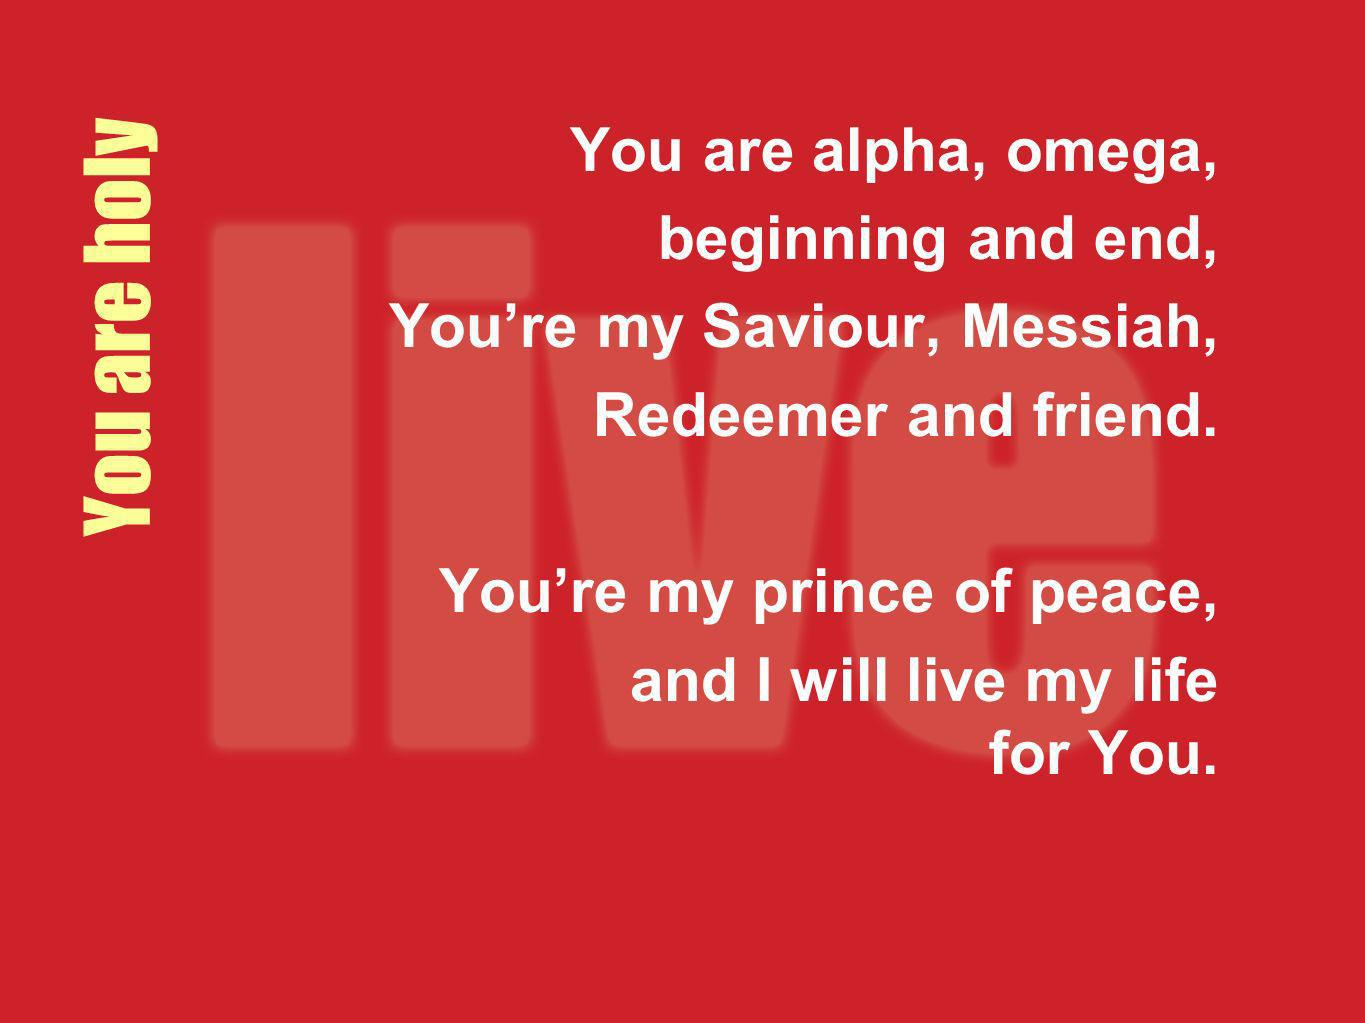 You are holy You are alpha, omega, beginning and end, Youre my Saviour, Messiah, Redeemer and friend. Youre my prince of peace, and I will live my lif